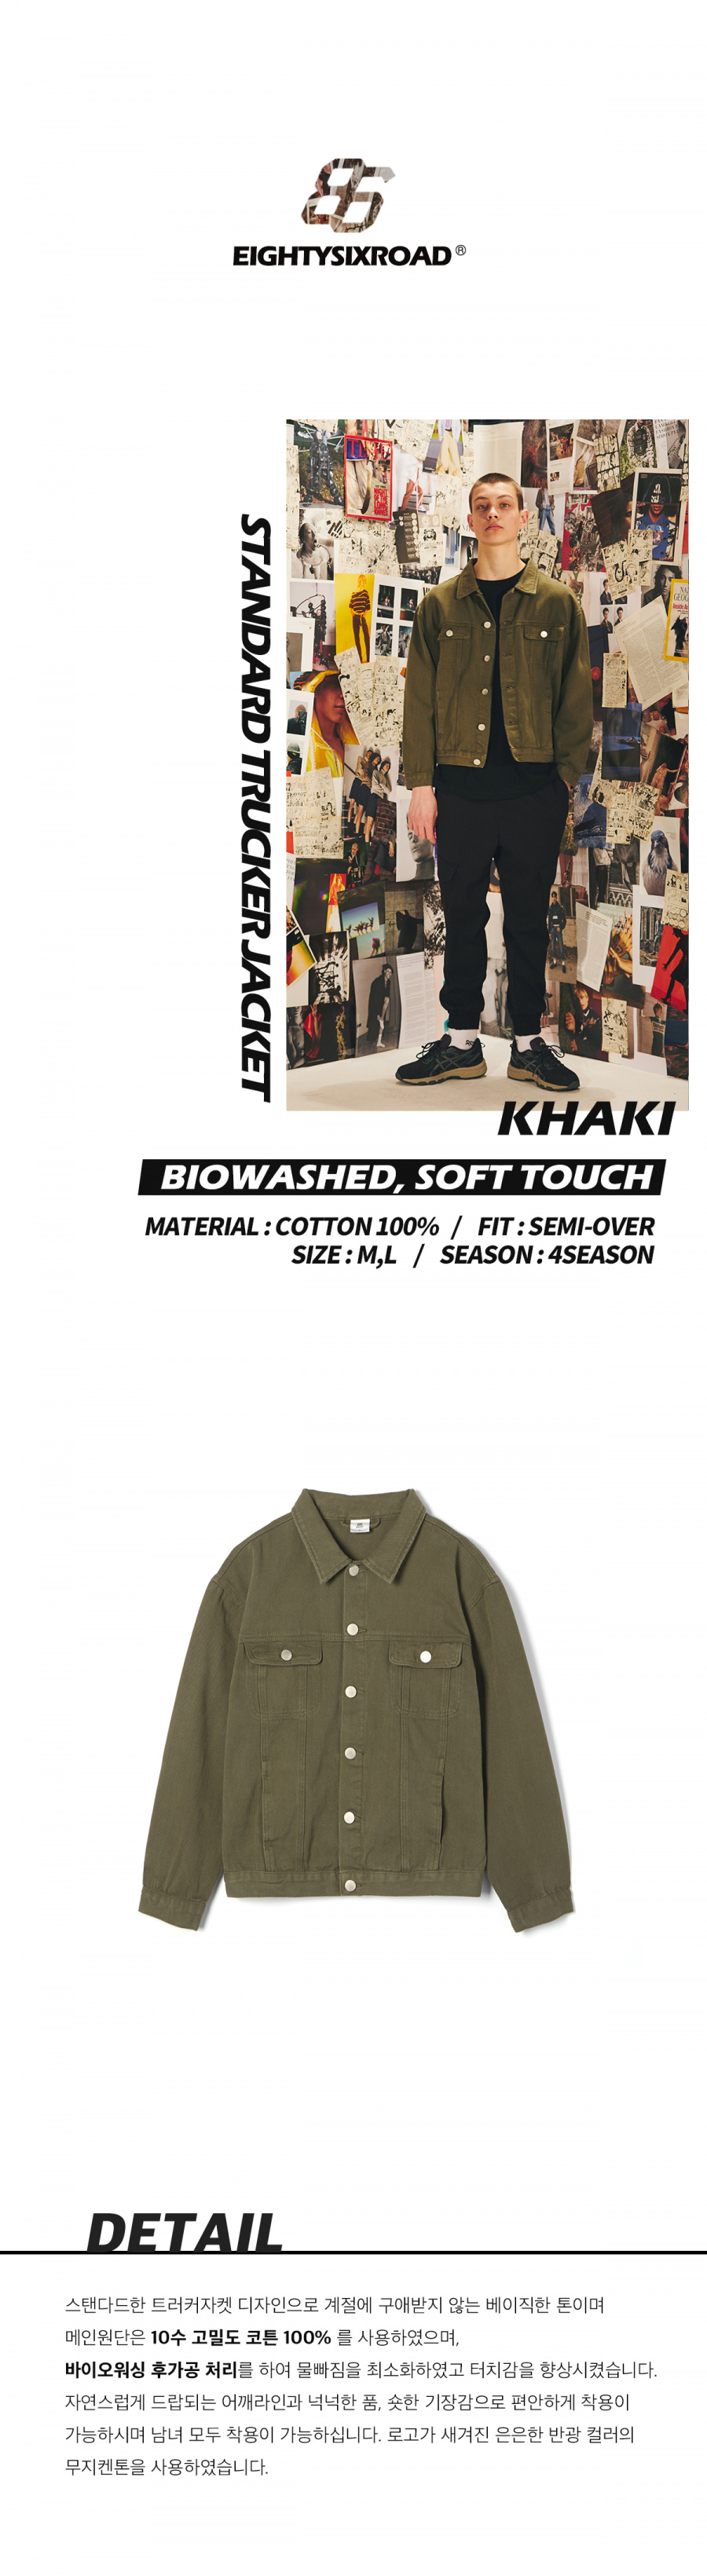 86로드(86ROAD) STANDARD TRUCKER JACKET(Khaki)